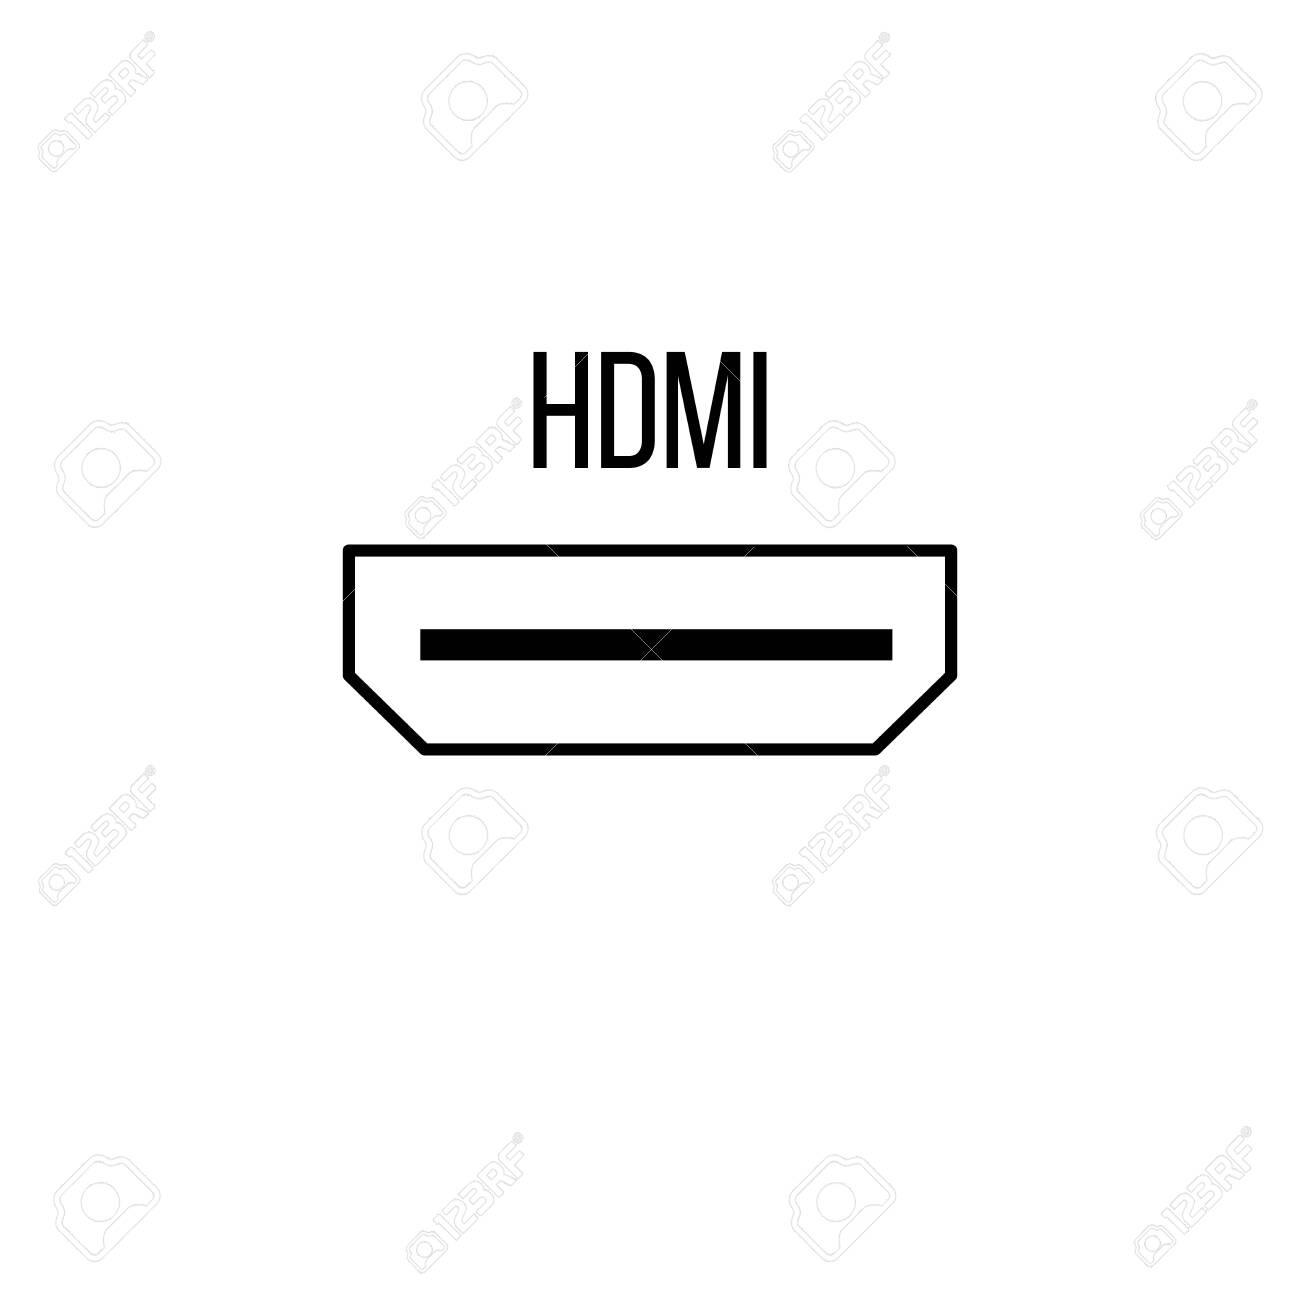 hdmi icon from electronic devices collection line vector sign royalty free cliparts vectors and stock illustration image 141871676 hdmi icon from electronic devices collection line vector sign